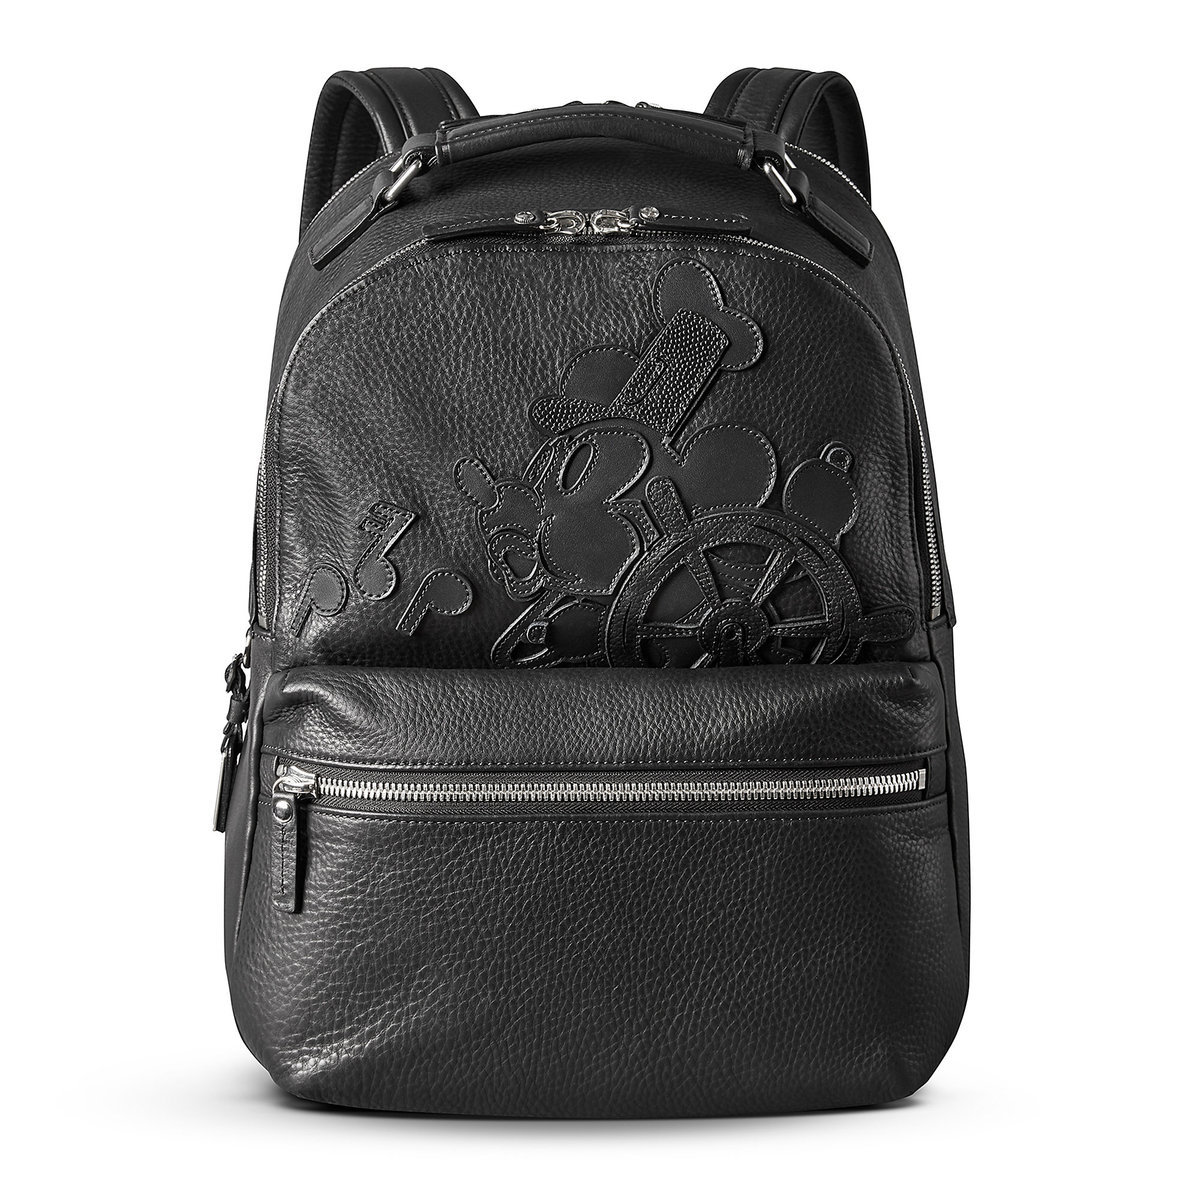 3b20c48433e Mickey Mouse Steamboat Willie Leather Backpack by Shinola